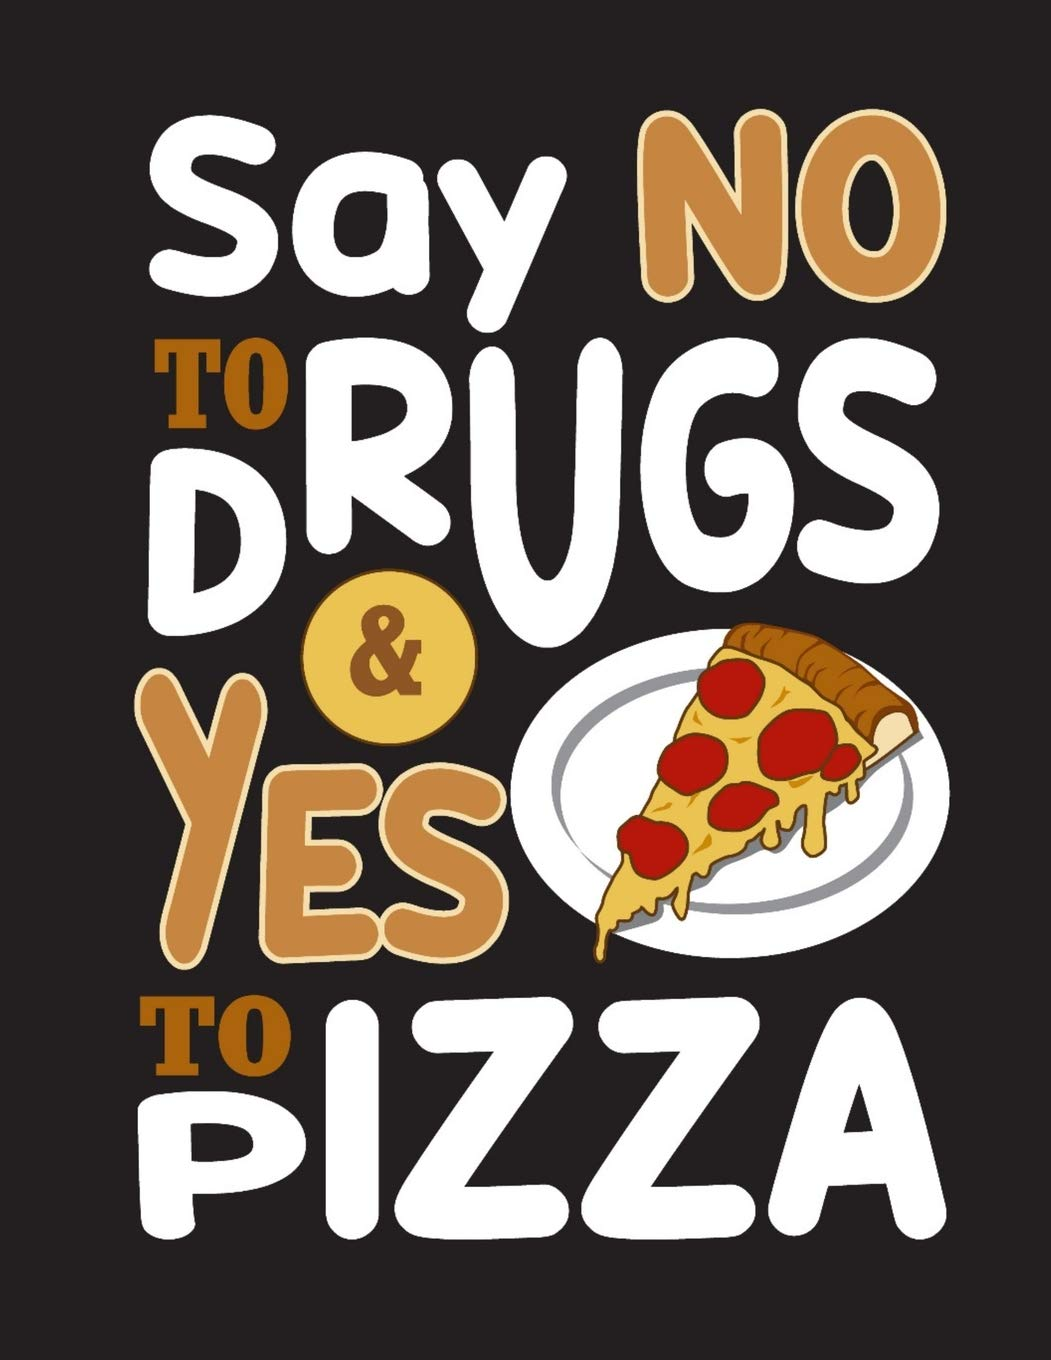 Say No To Drugs Yes To Pizza Become The Ultimate Pizza Expert With This Awesome Art Pizza Review Journal Gift Publishing Pinky Pizza 9781691611447 Books Amazon Ca